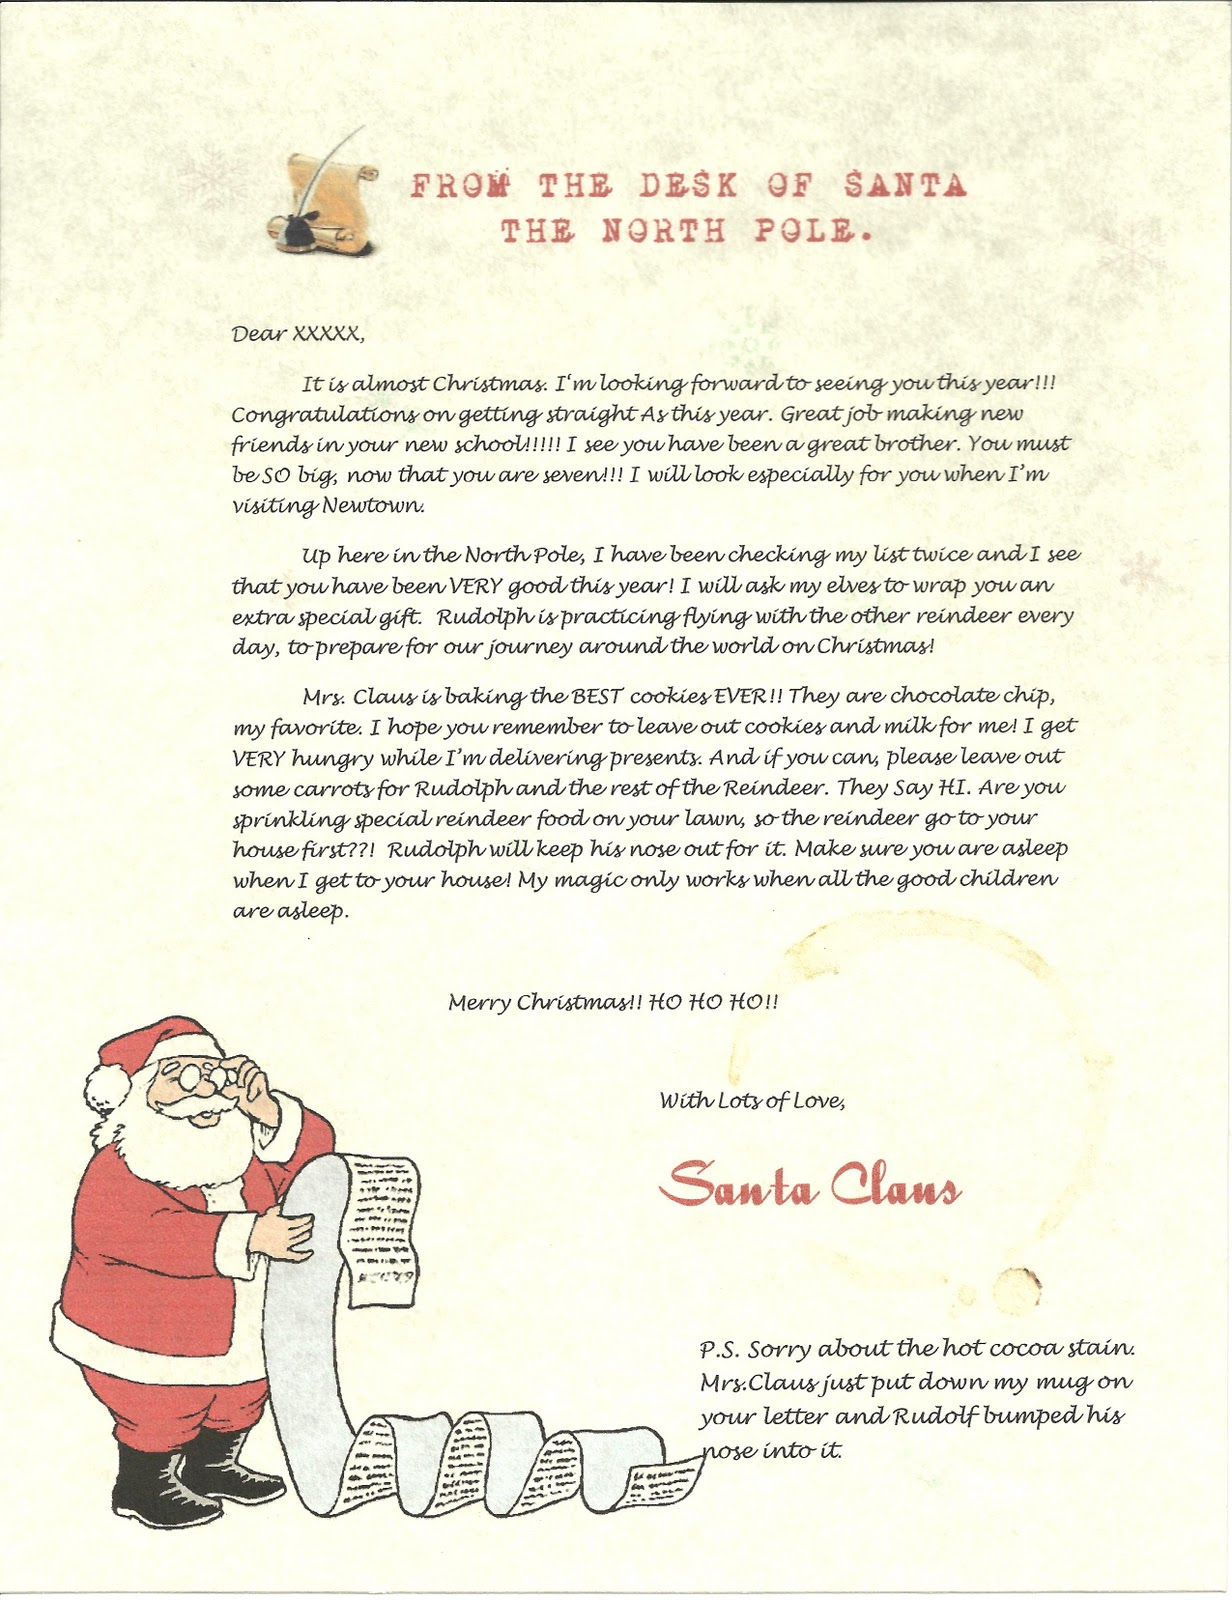 Sample+letter+002 Santa Claus Response Letter Template on classic face, hat cut out, business cards, paper cut-out, already colored, beard cut out, body cartoon, clip art,